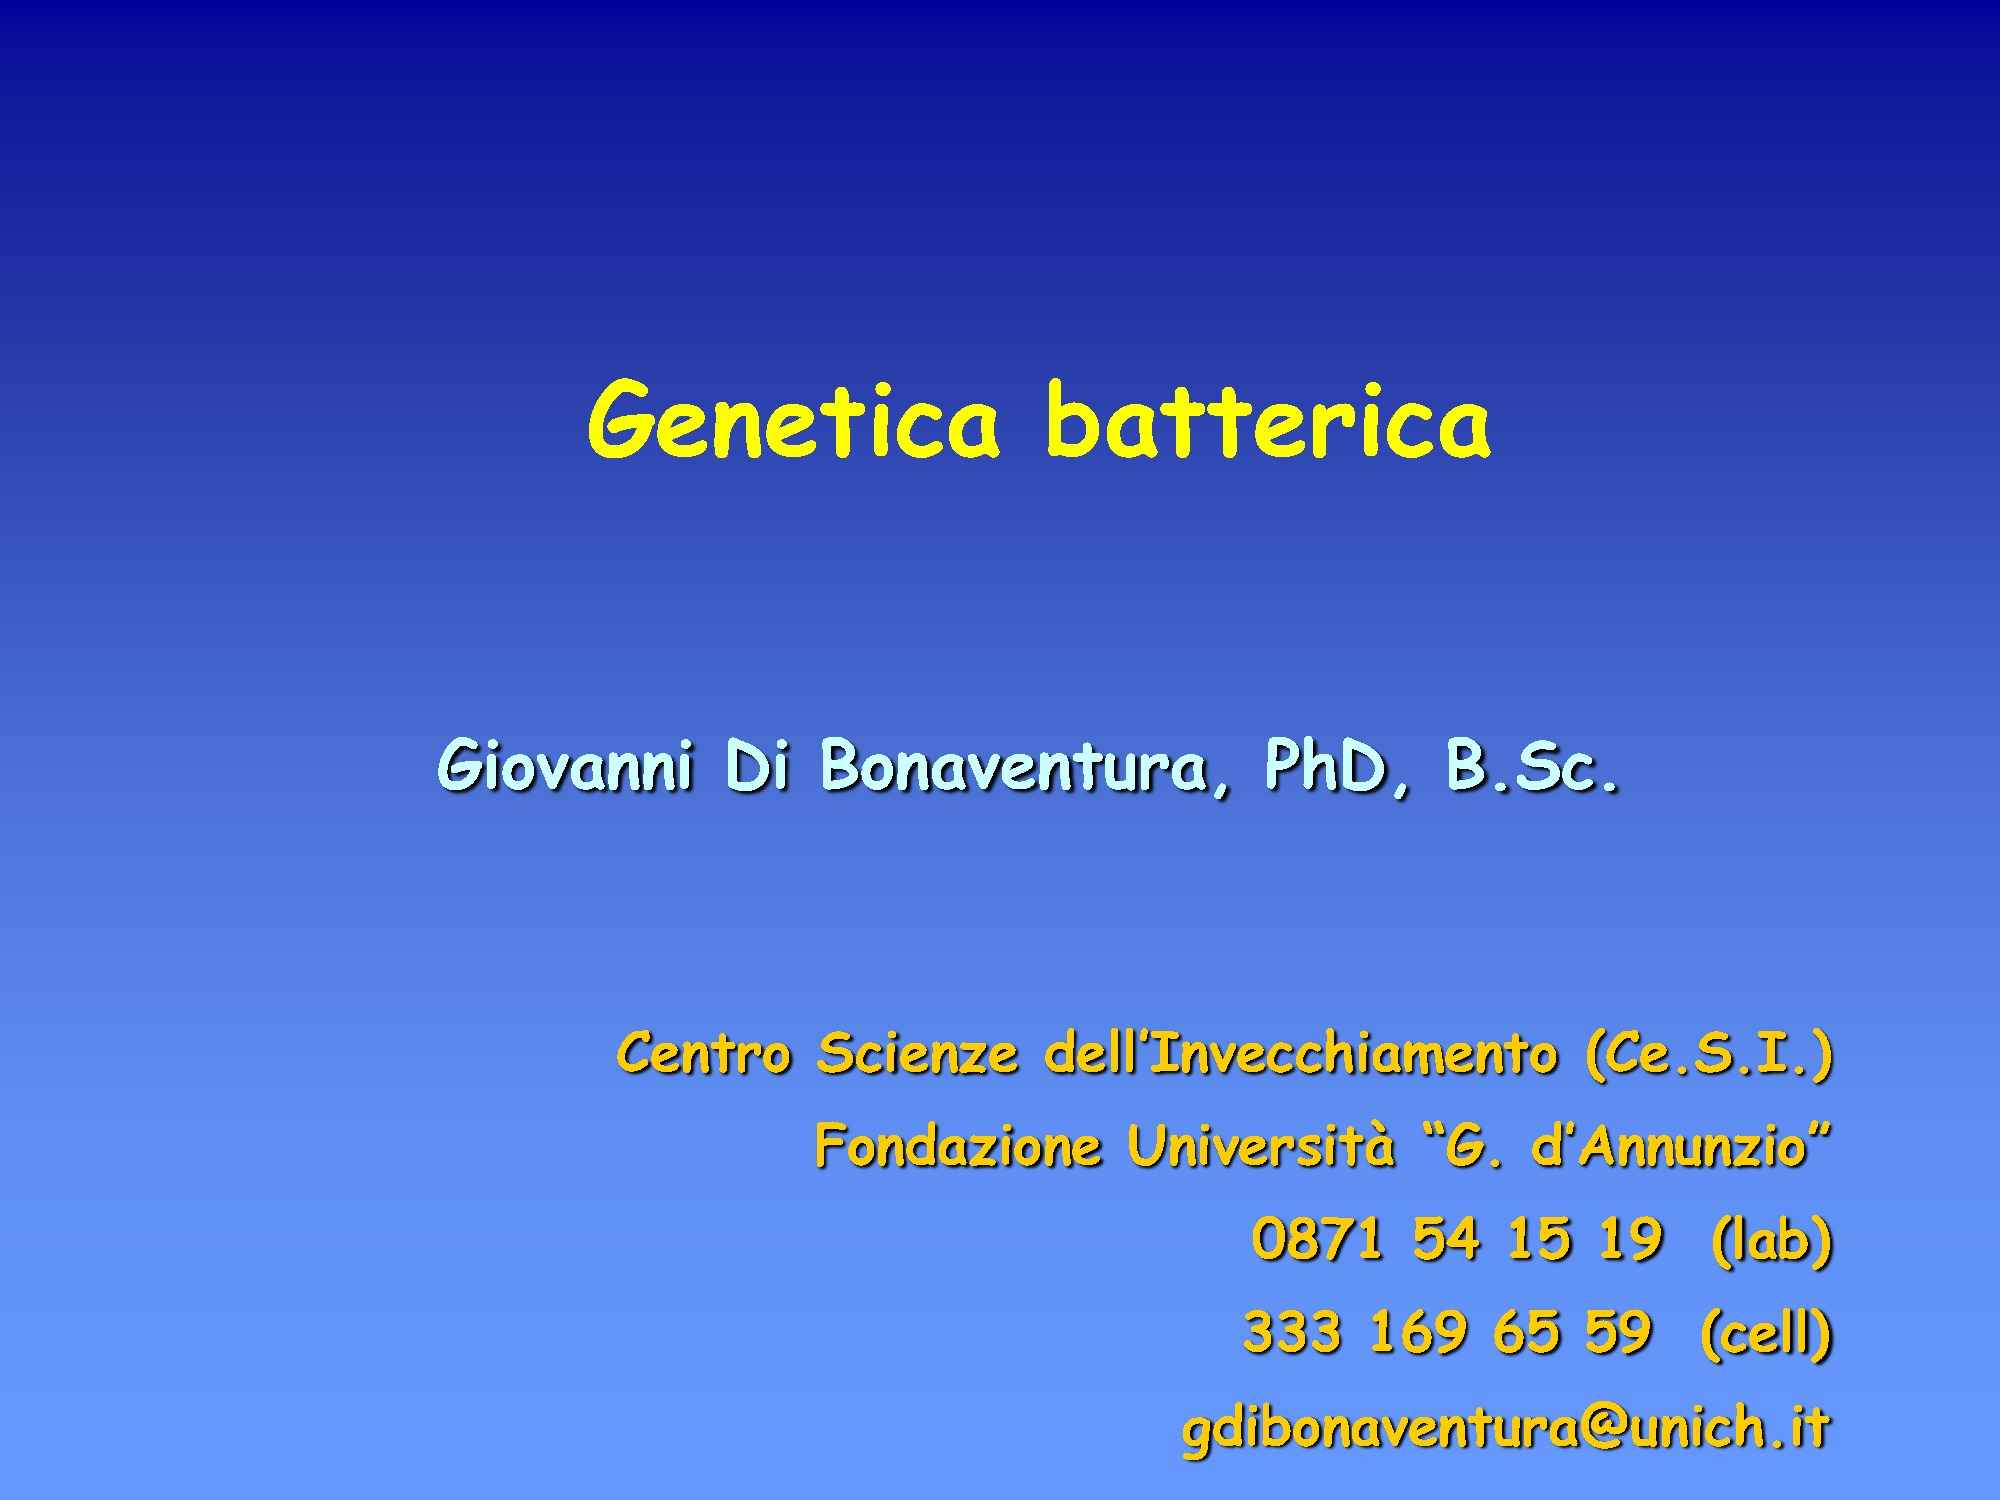 Genetica batterica Pag. 1